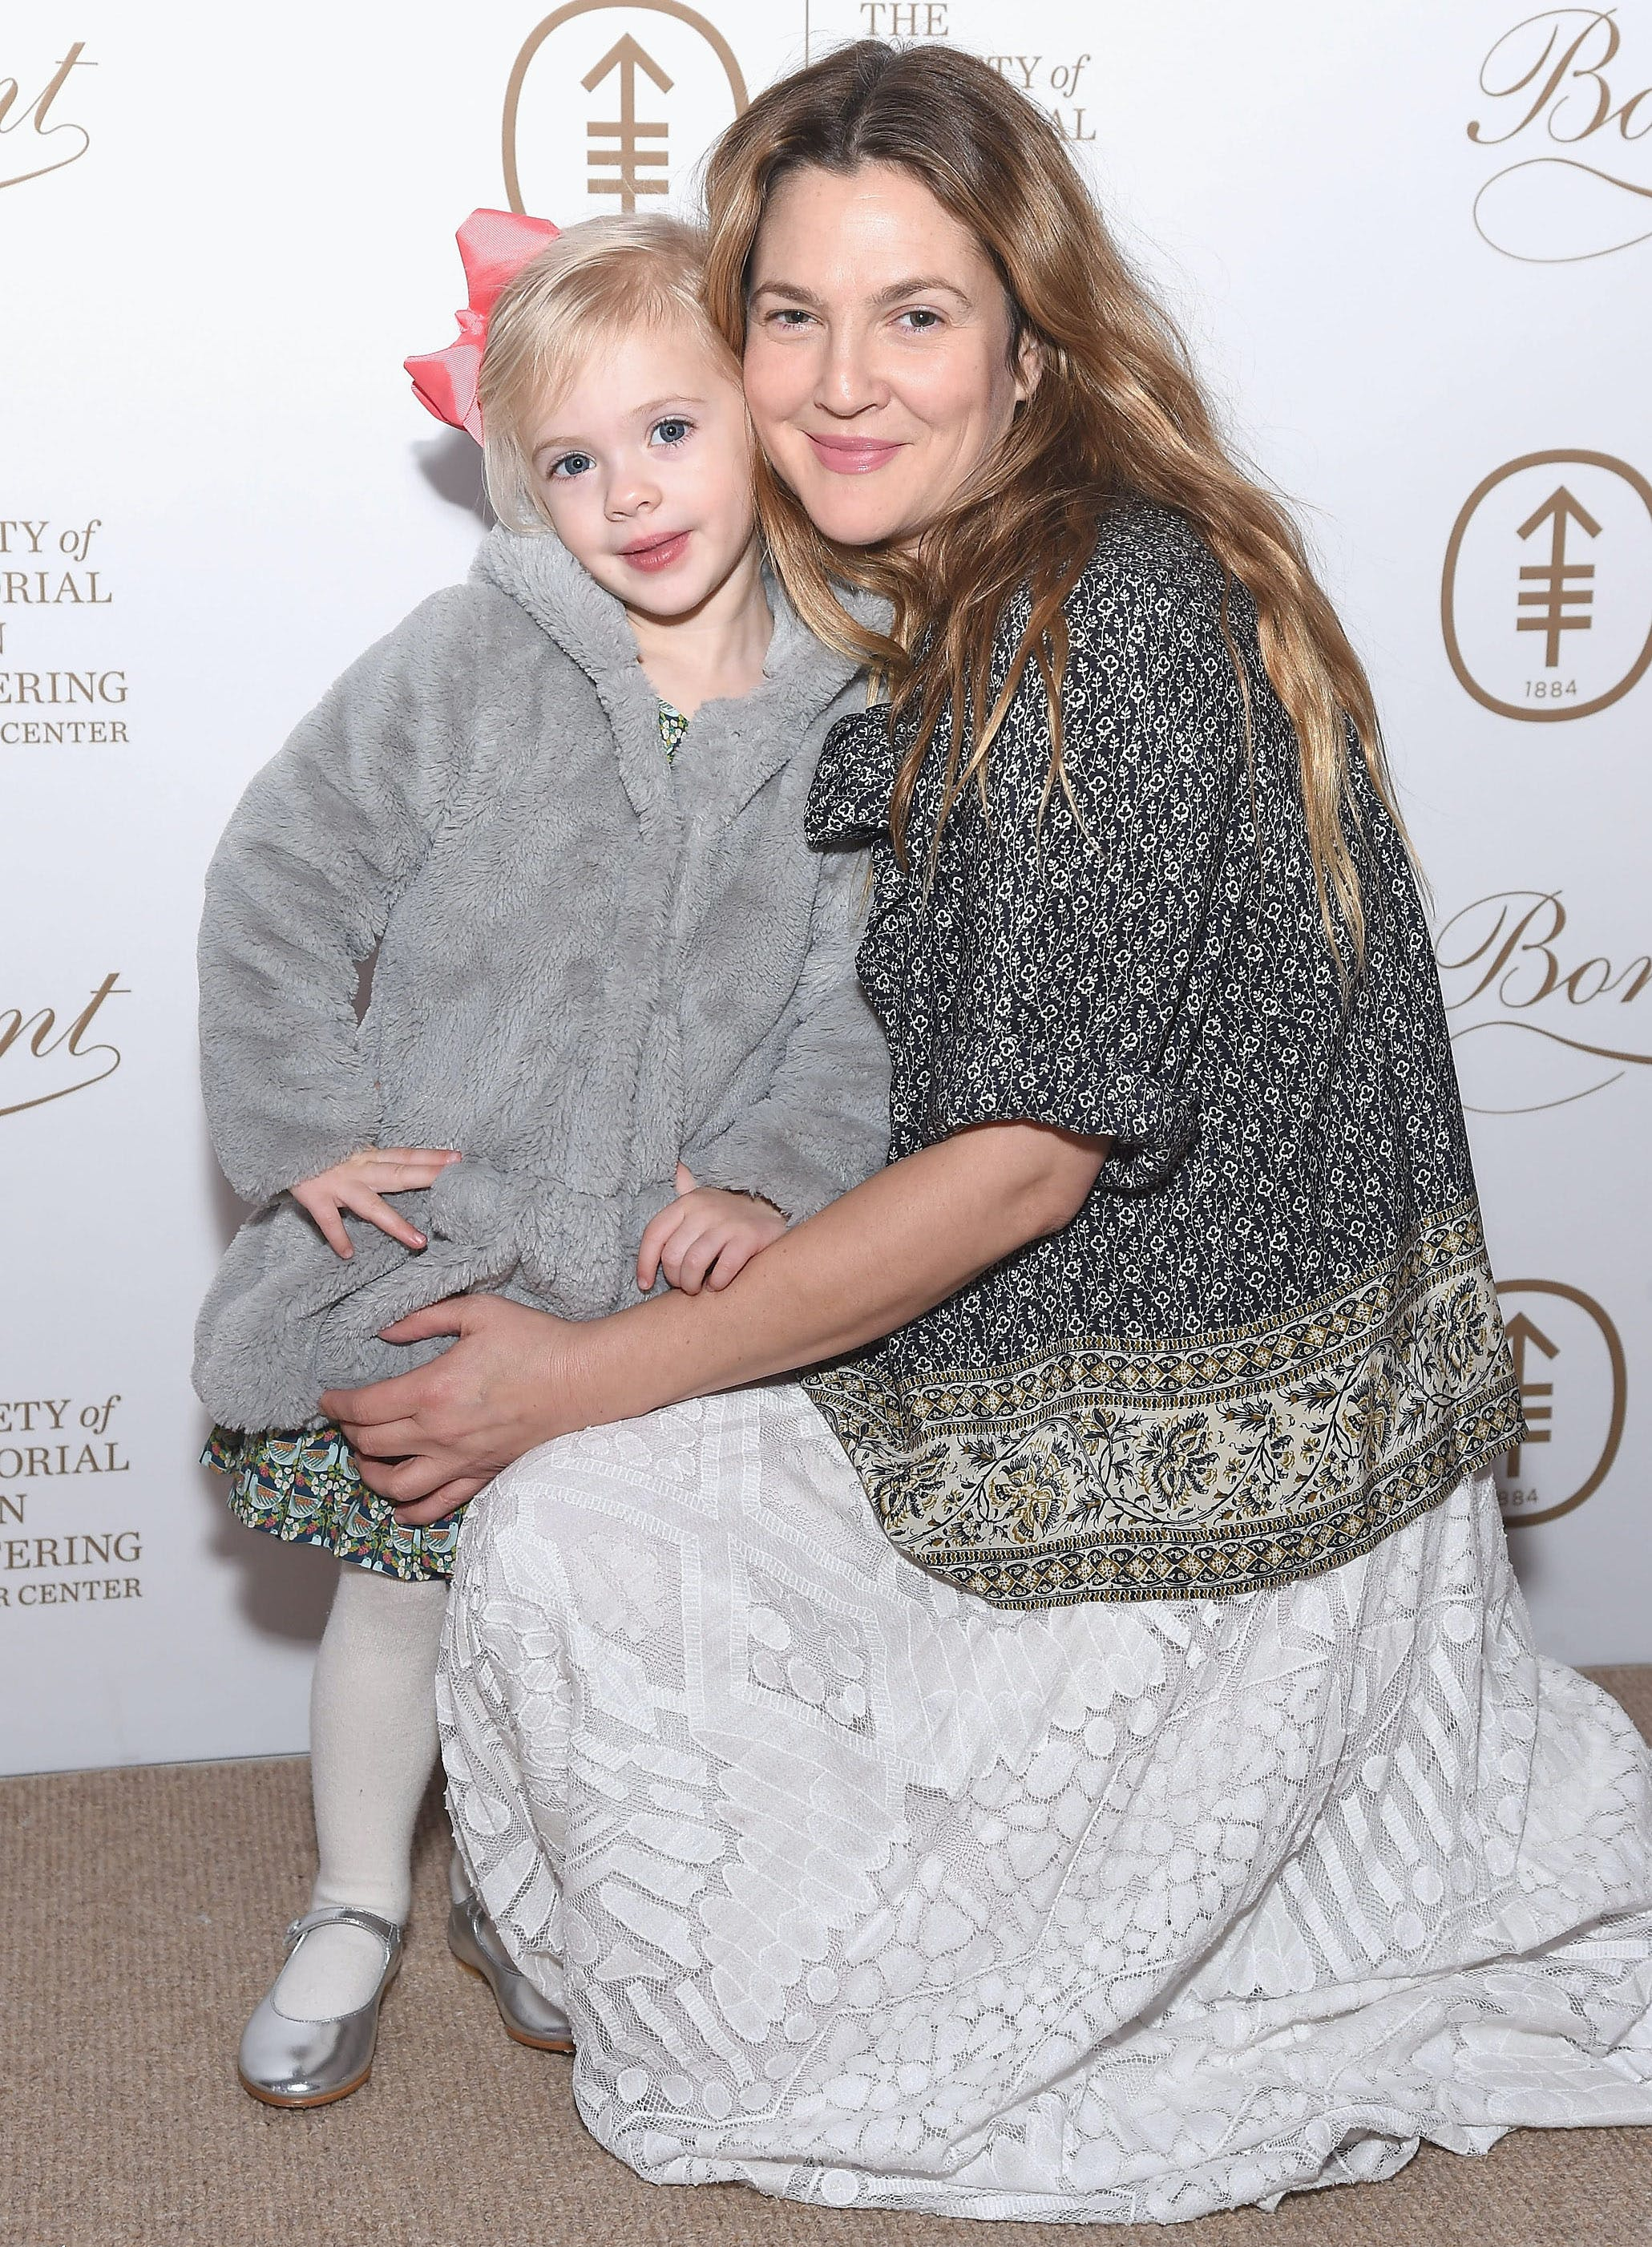 drew barrymore with her daughter frankie